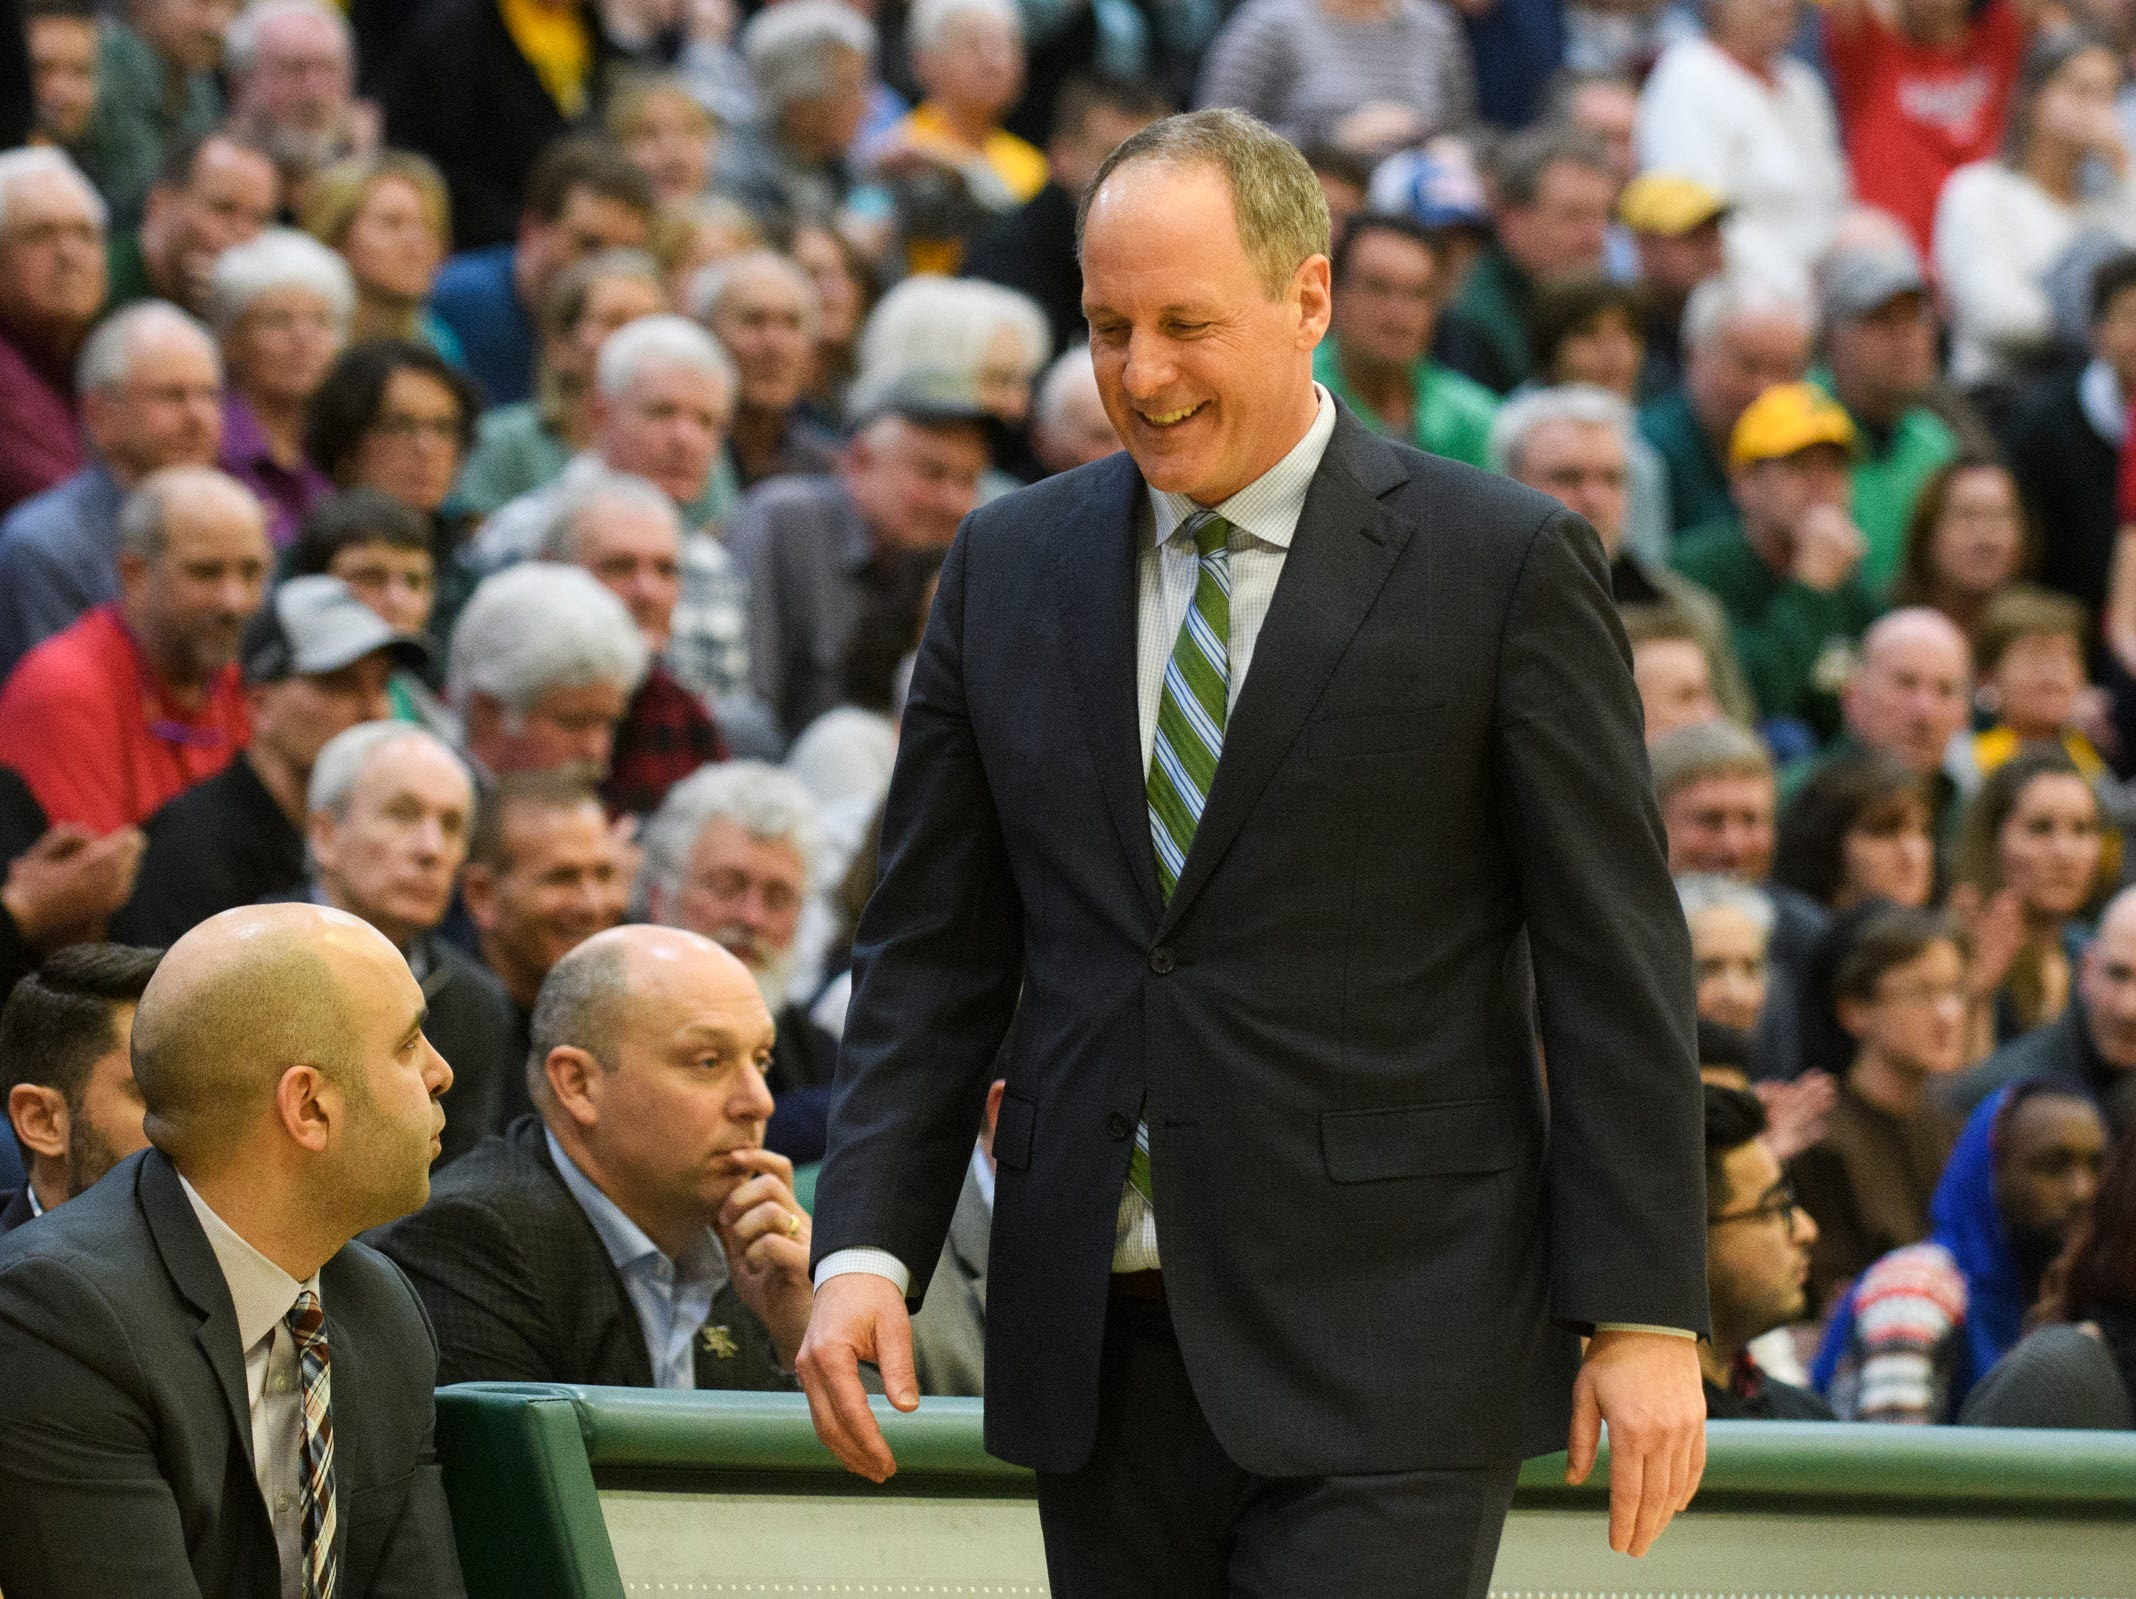 Vermont head coach smiles on the sidelines during the men's basketball game between the Stony Brook Seawolves and the Vermont Catamounts at Patrick Gym on Saturday night March 2, 2019 in Burlington, Vermont.